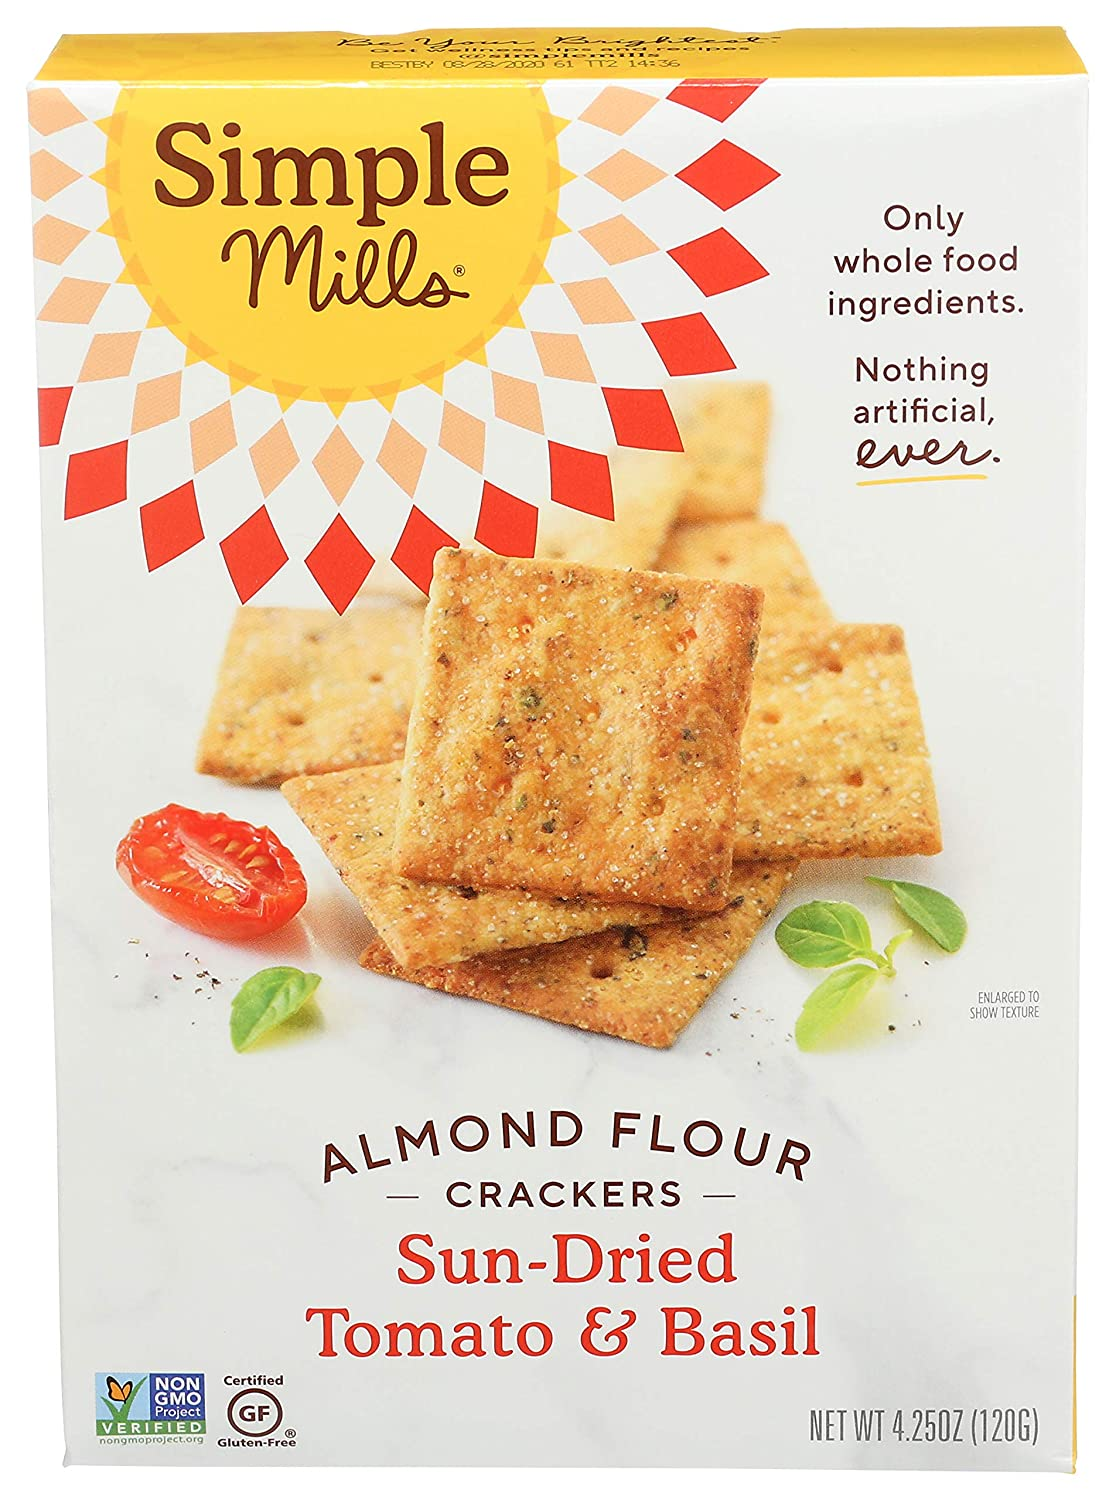 Simple Mills Almond Flour Crackers, Sundried Tomato & Basil, Gluten Free, Flax Seed, Sunflower Seeds, Corn Free, Good for Snacks, Made with whole foods, (Packaging May Vary)